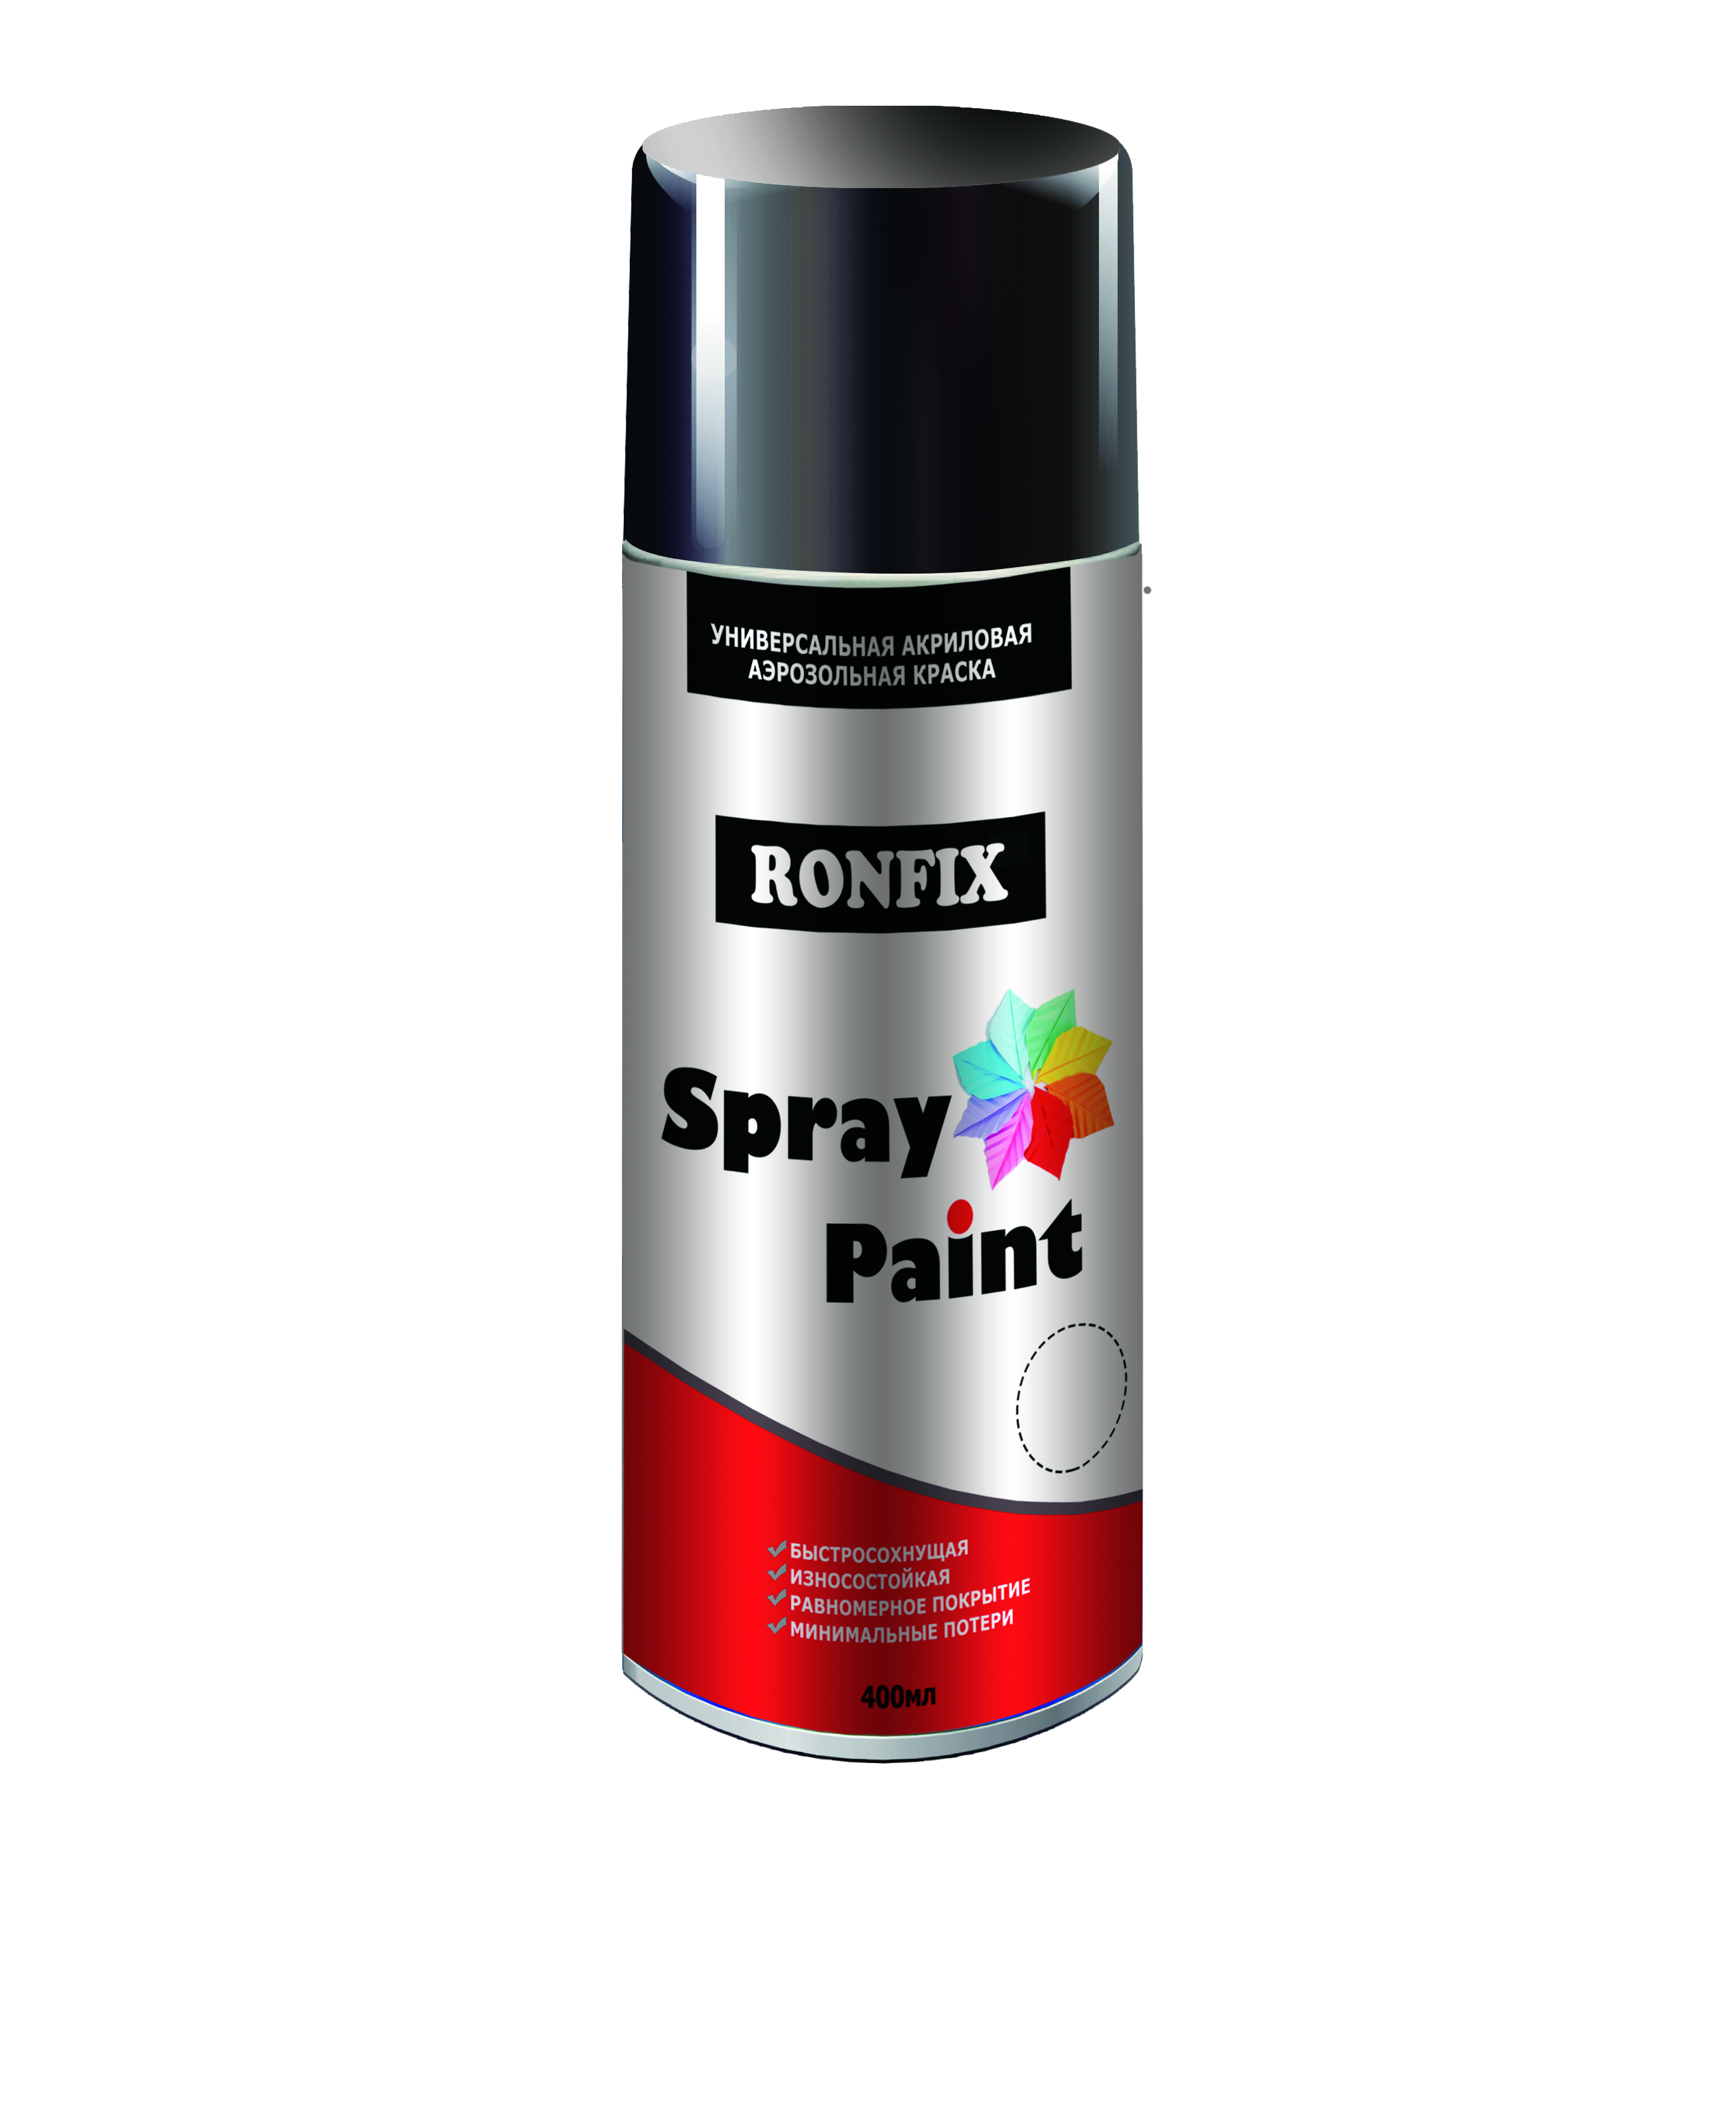 INTERIOR/EXTERIOR SPRAY PAINT RONFIX